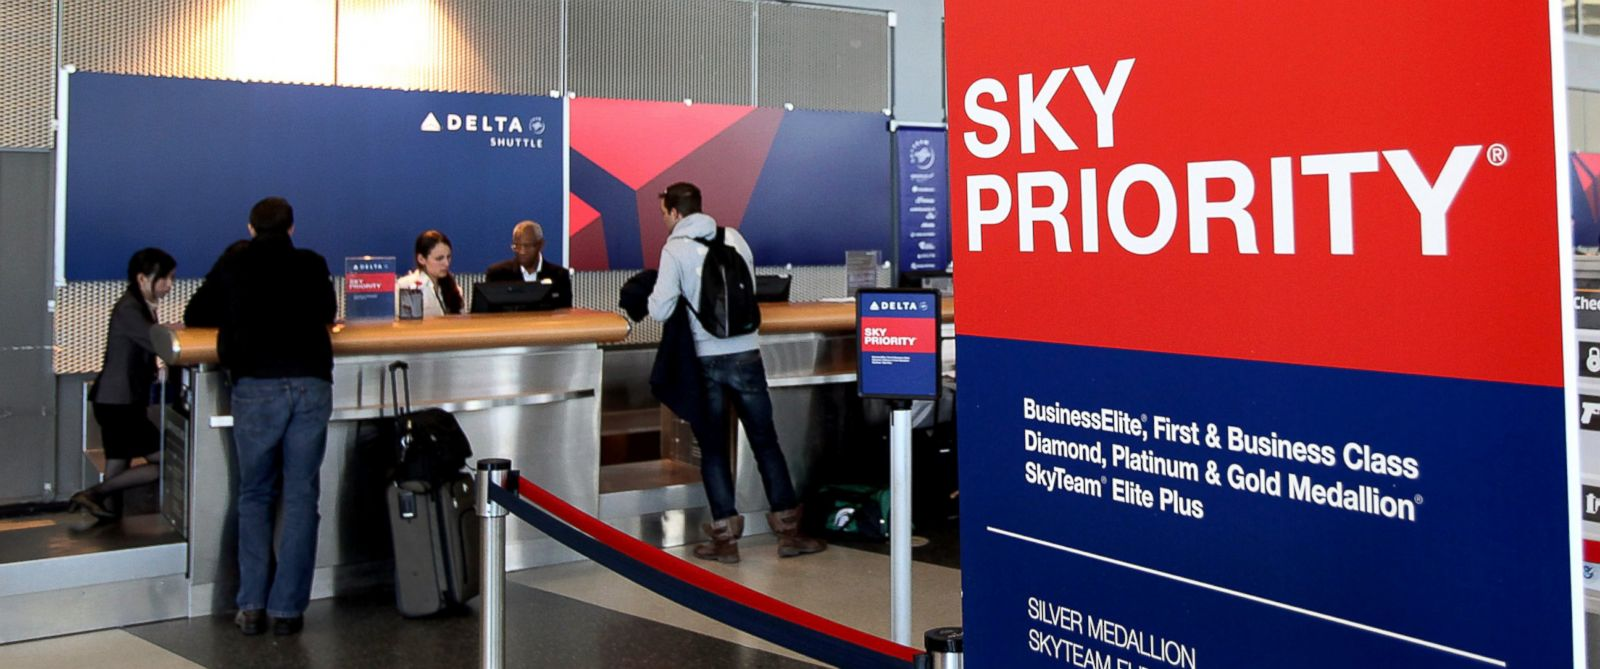 refundable airline tickets delta